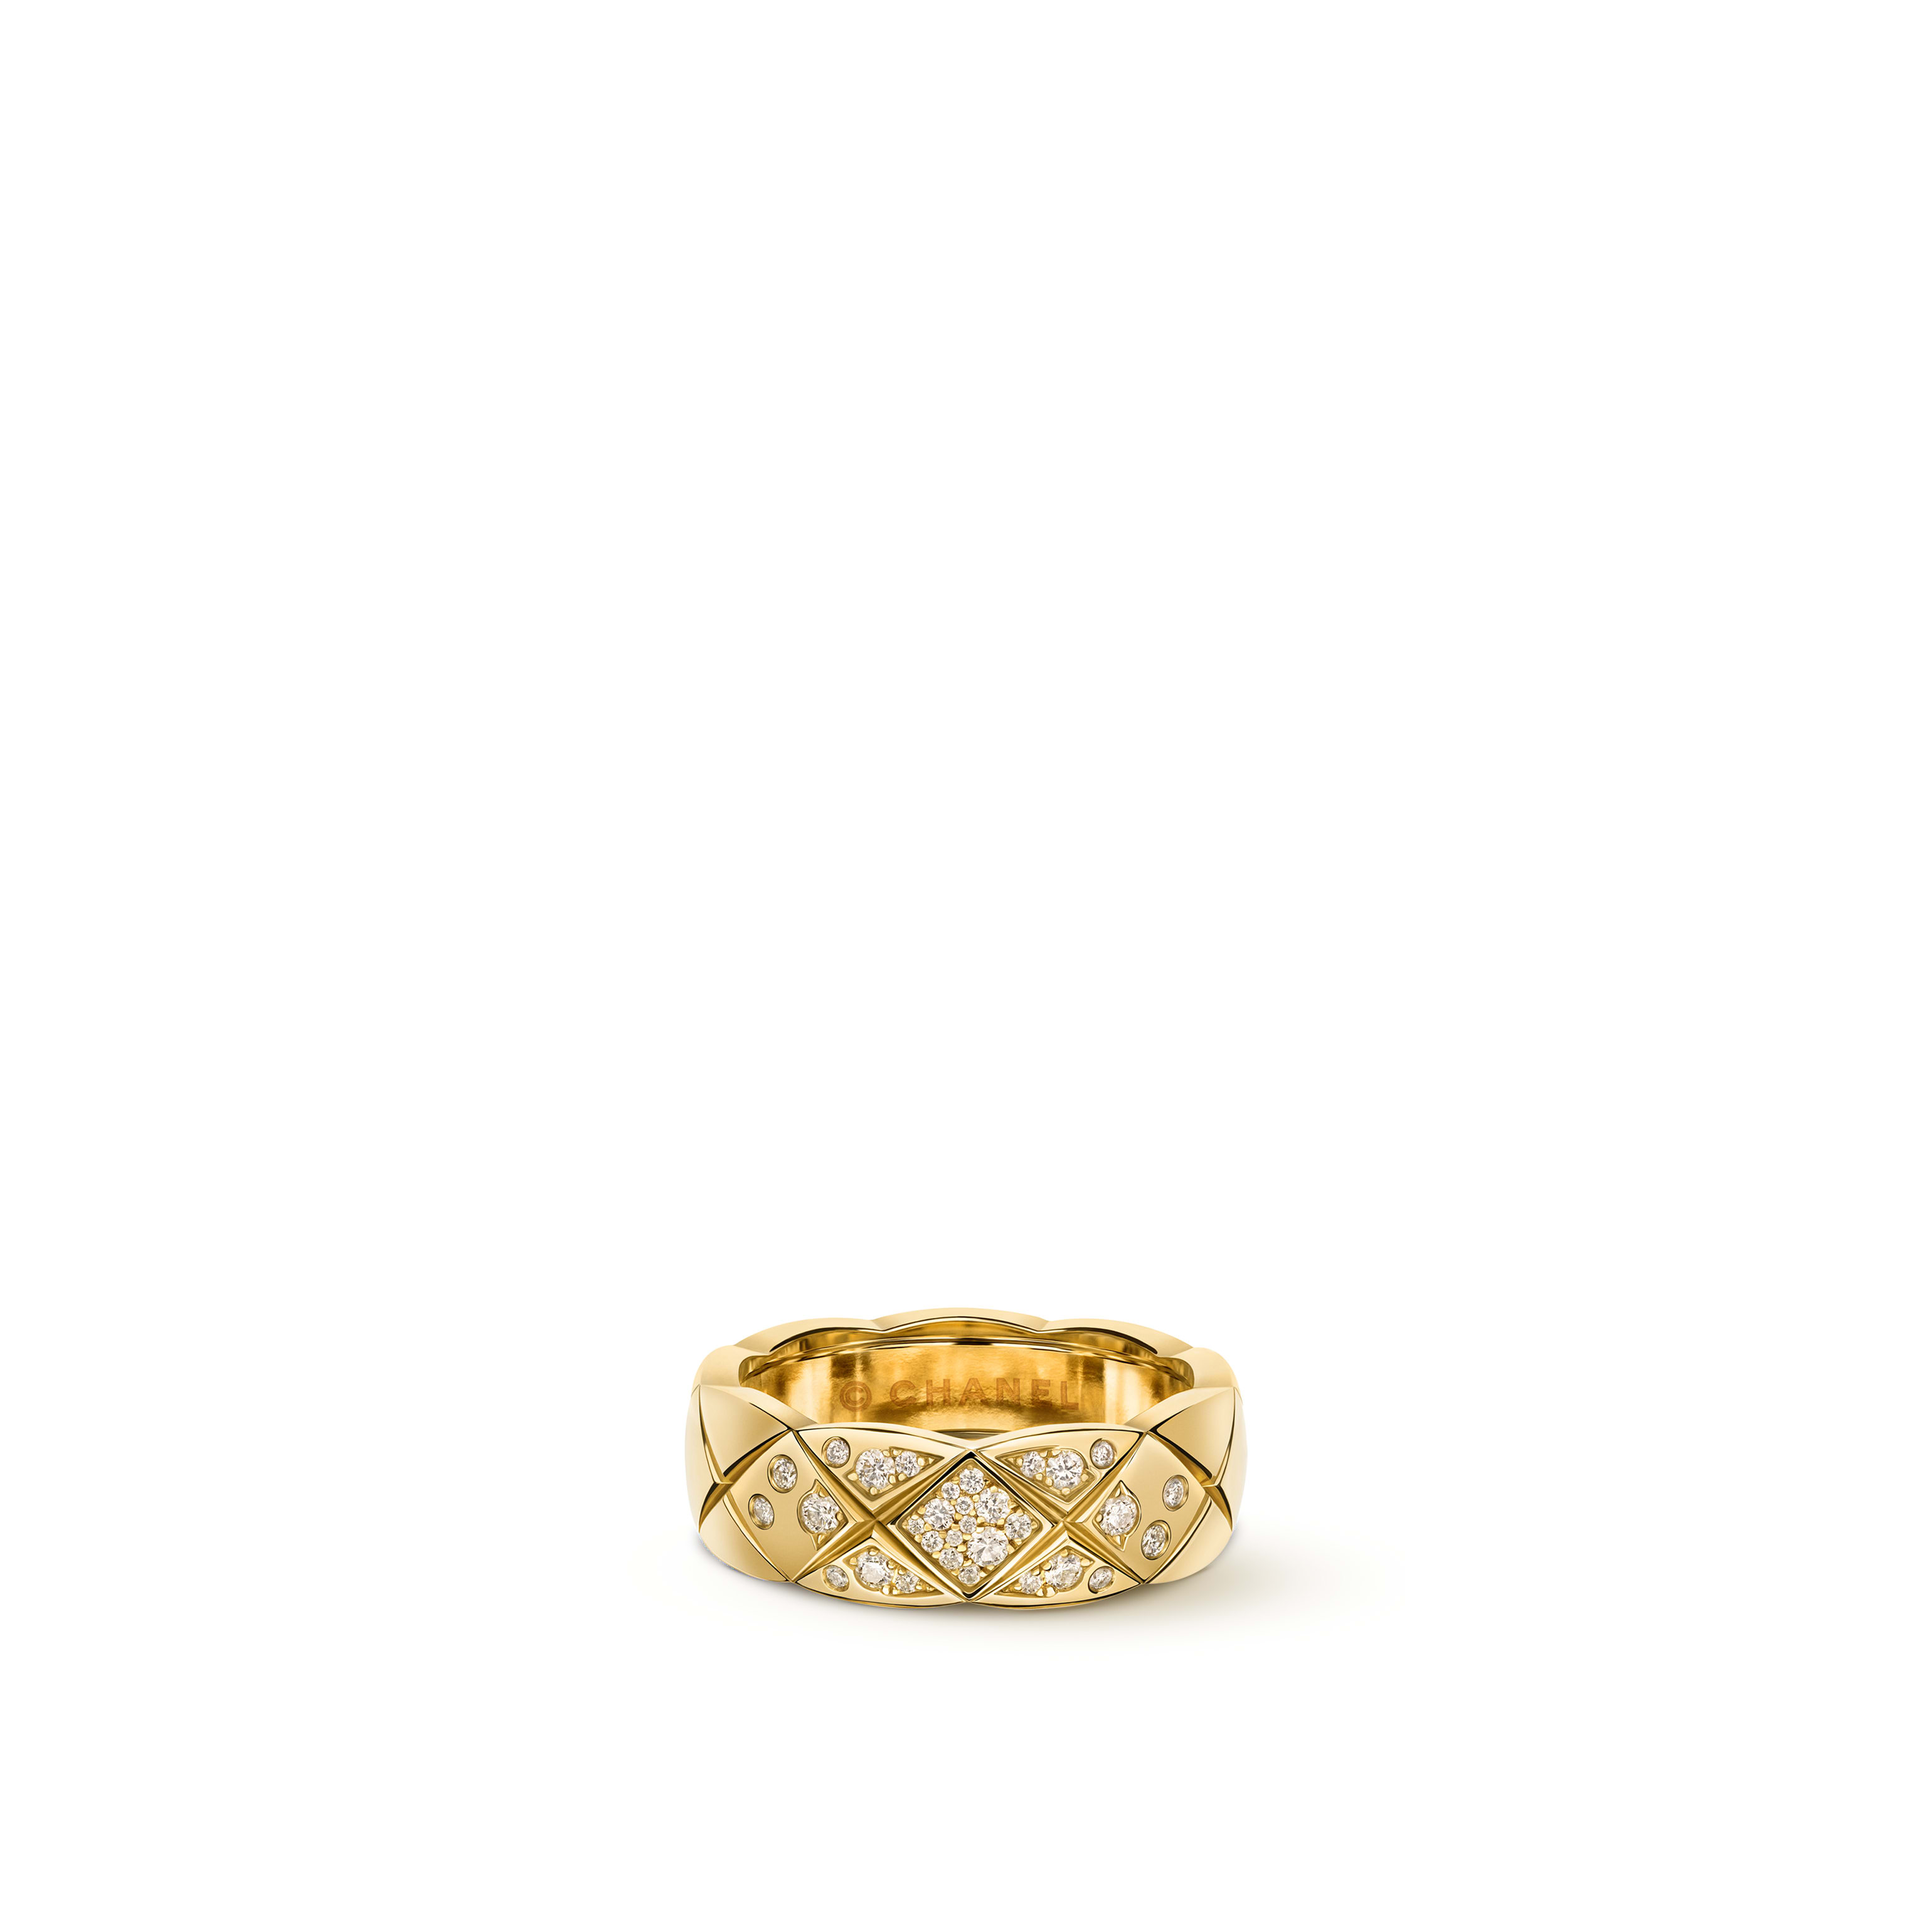 Coco Crush ring - Quilted motif, small version, 18K yellow gold, diamonds - CHANEL - Default view - see standard sized version